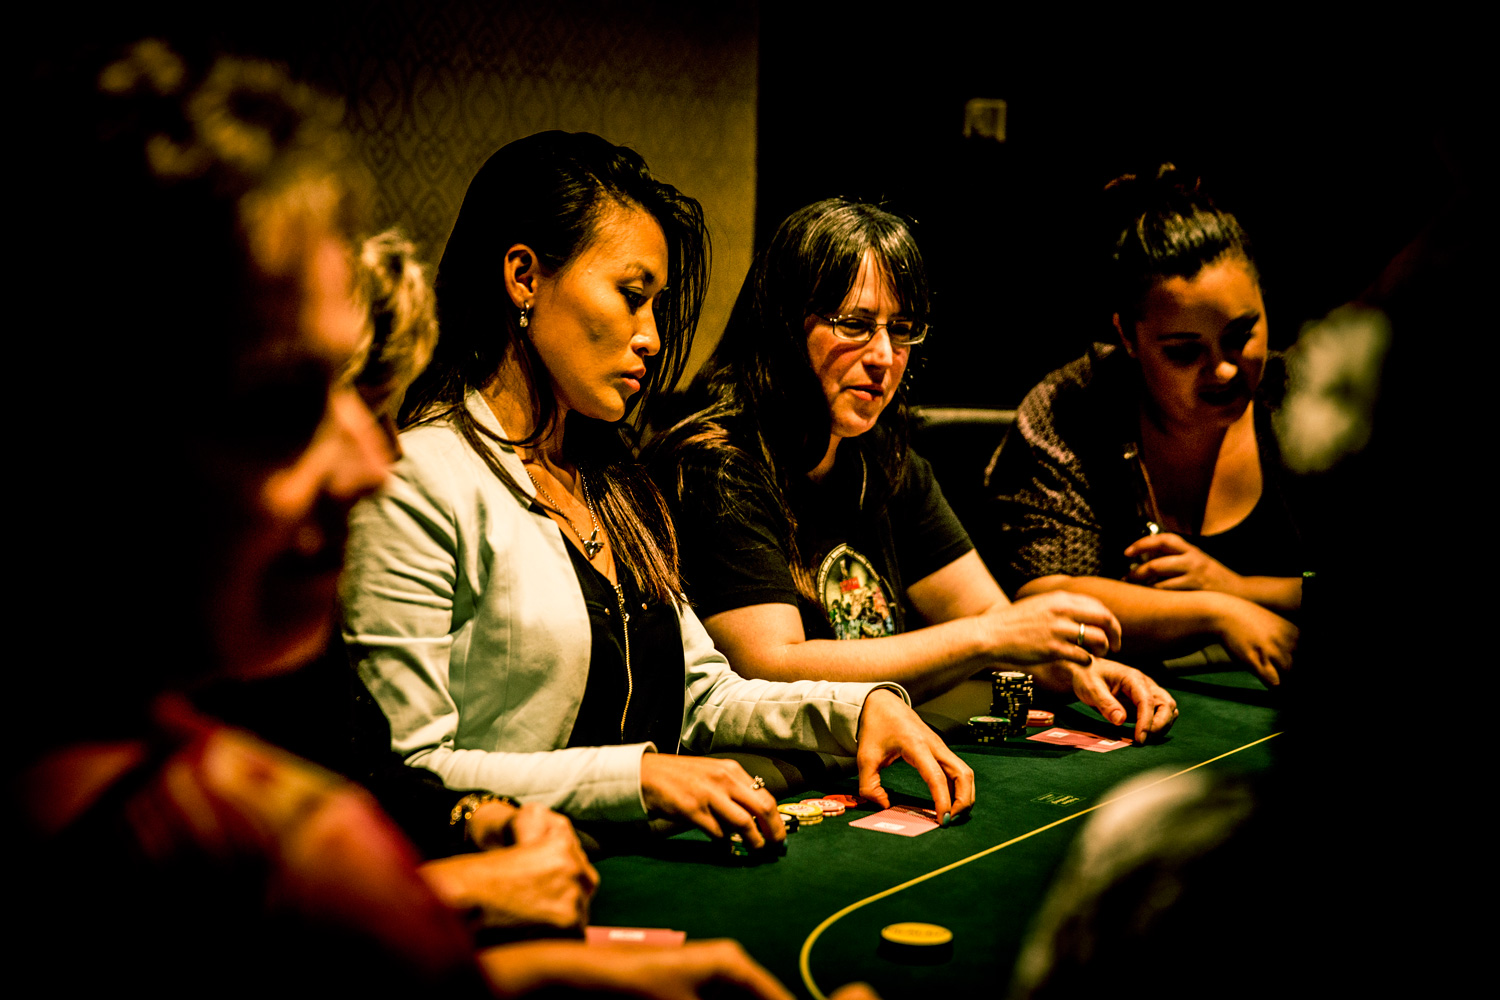 Sarah Lam (left), just back from playing in Las Vegas, came second in the women's side event at SkyCity.